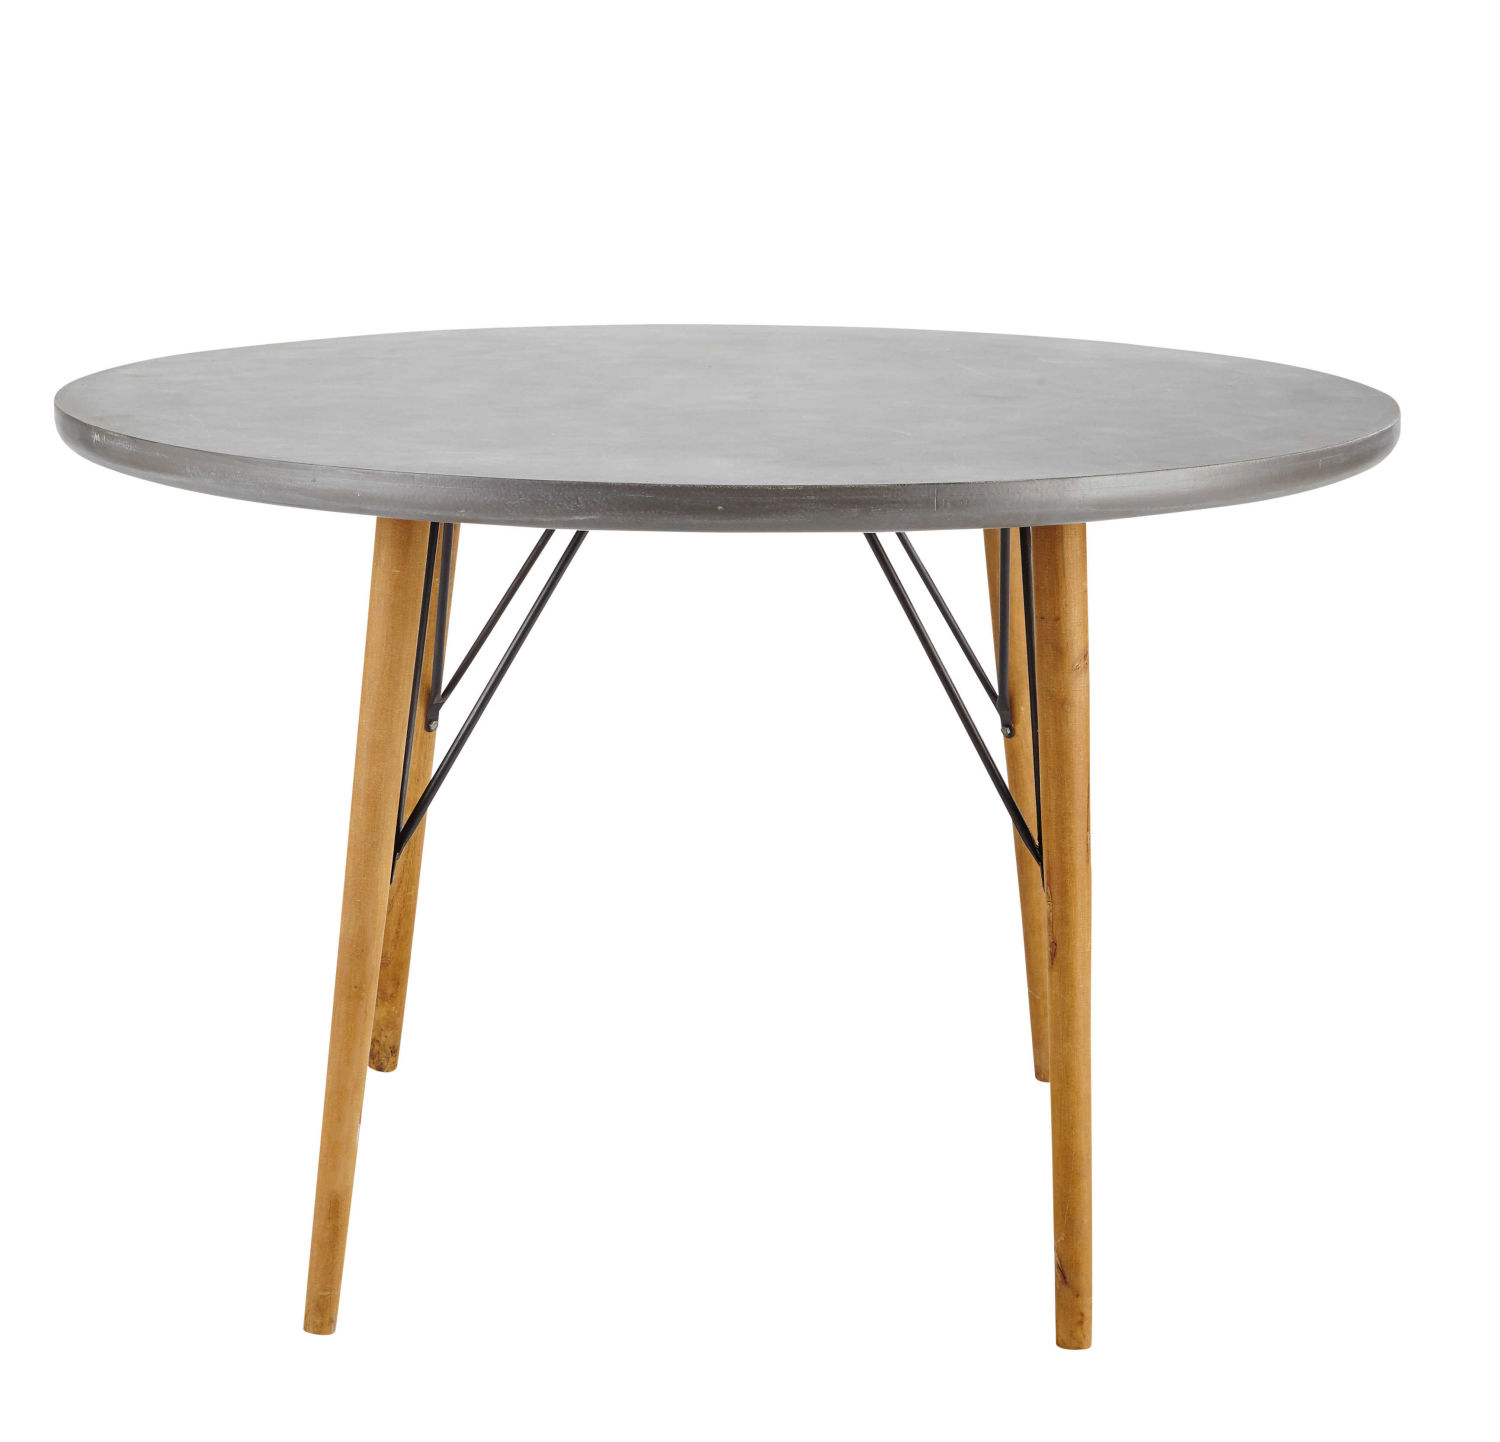 4 seater round dining table d120 maisons du monde. Black Bedroom Furniture Sets. Home Design Ideas